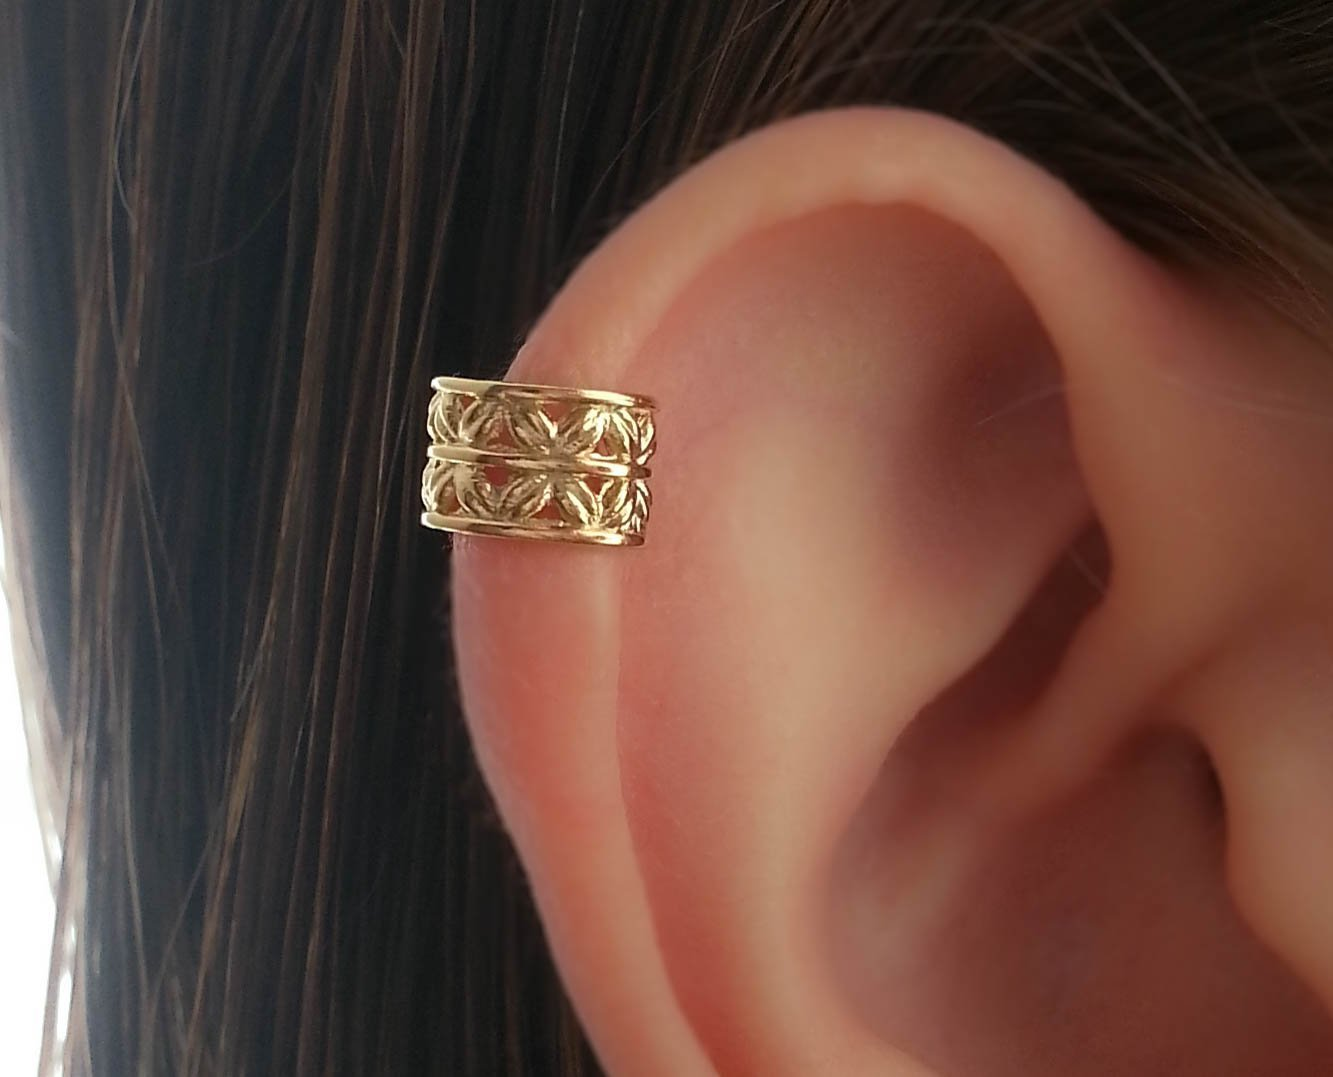 Ear Cuff Earring Helix Earcuff Gold Filled Wrap Non Piercing Fake Clip On